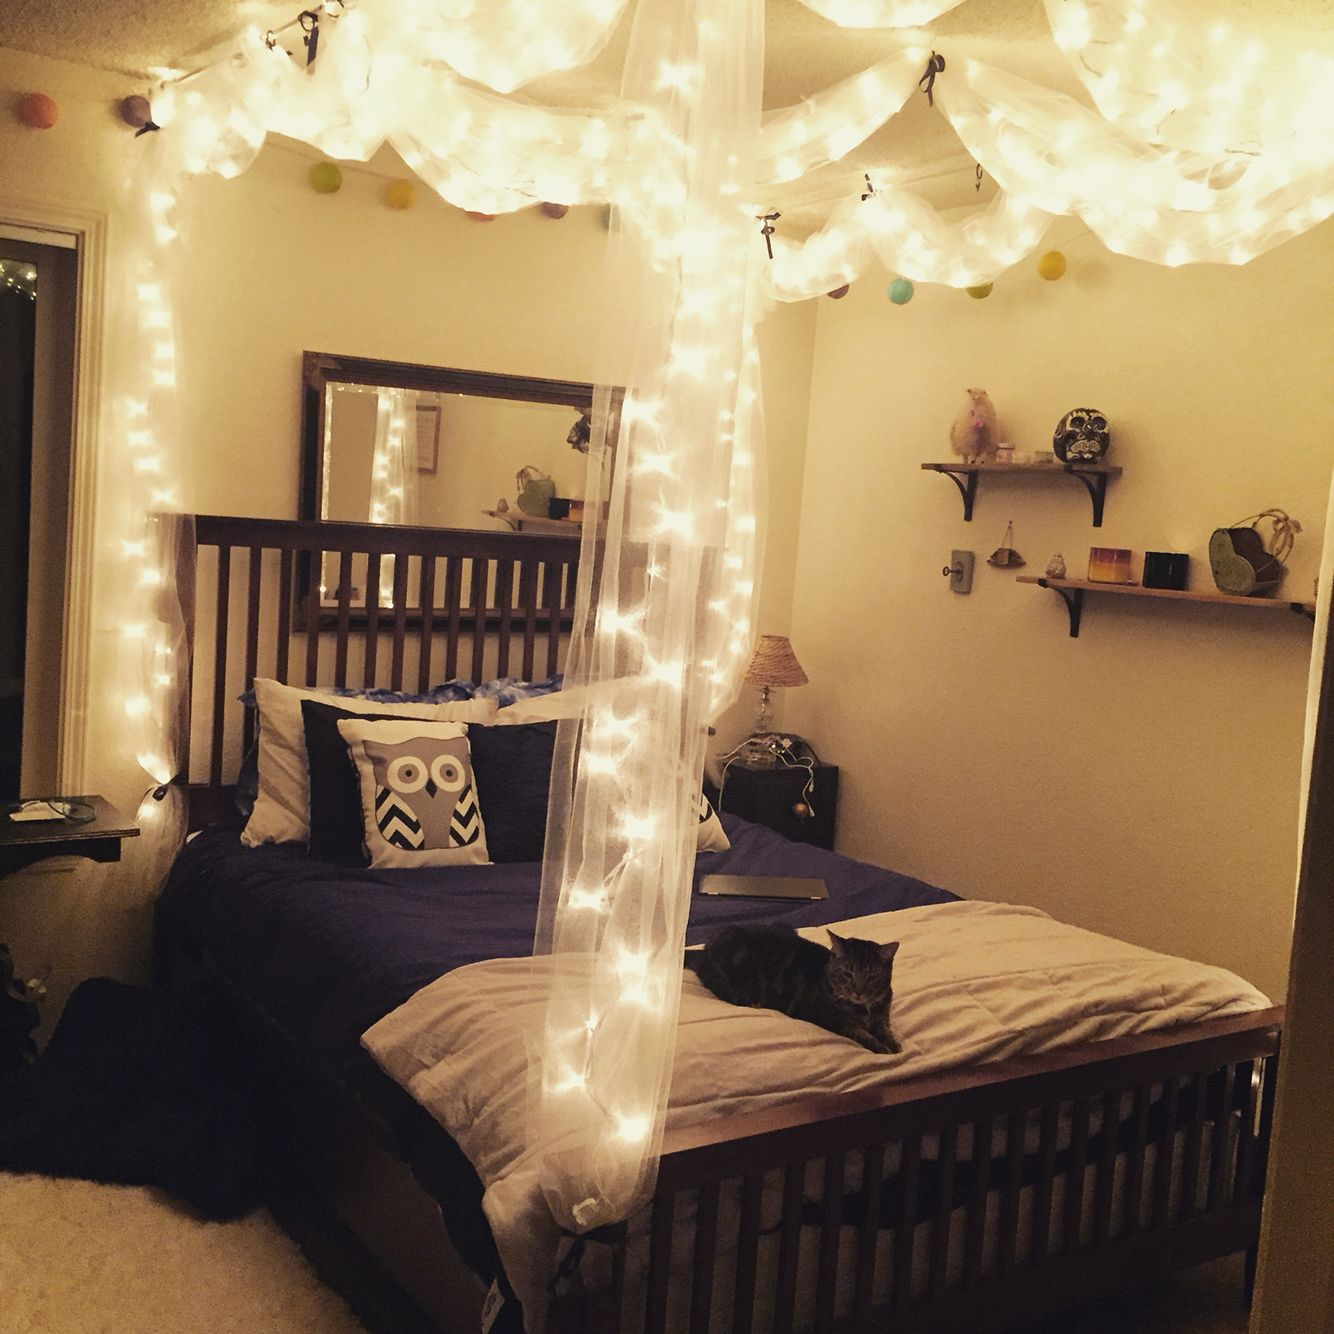 Diy bed canopy with lights diy pinterest canopy for Bedroom lights decor